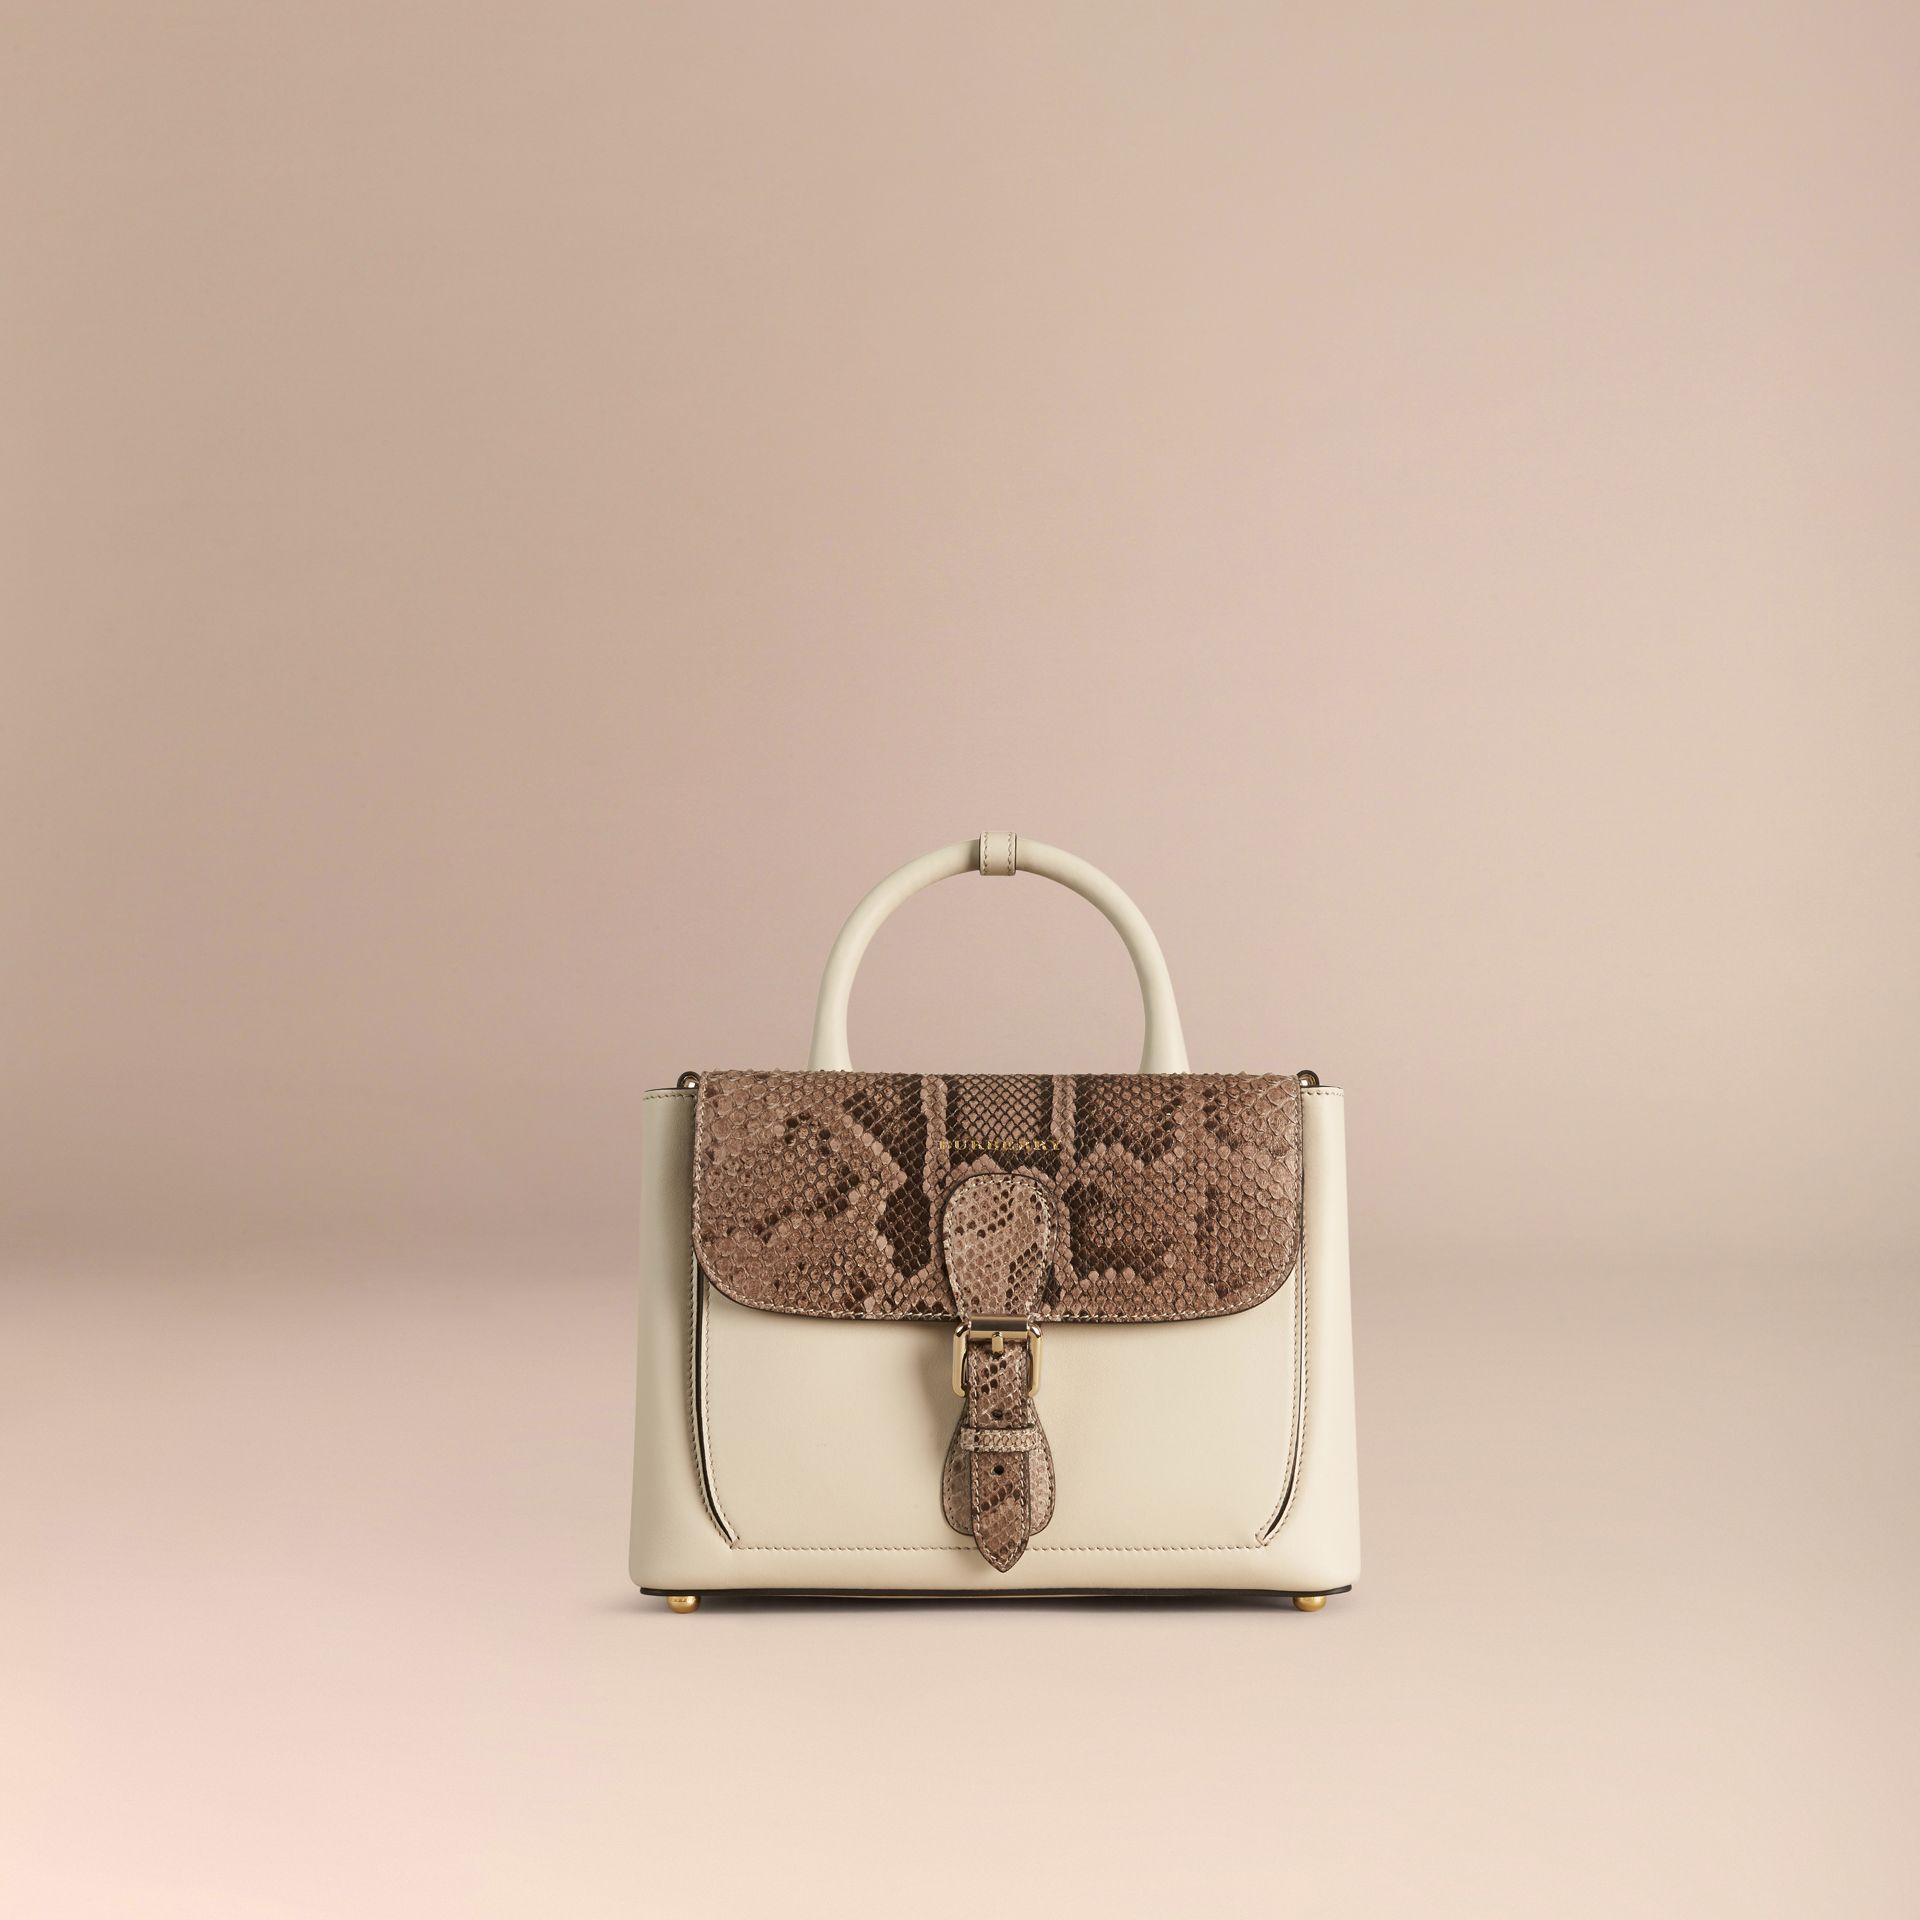 Stone The Small Saddle Bag in Smooth Leather and Python - gallery image 7